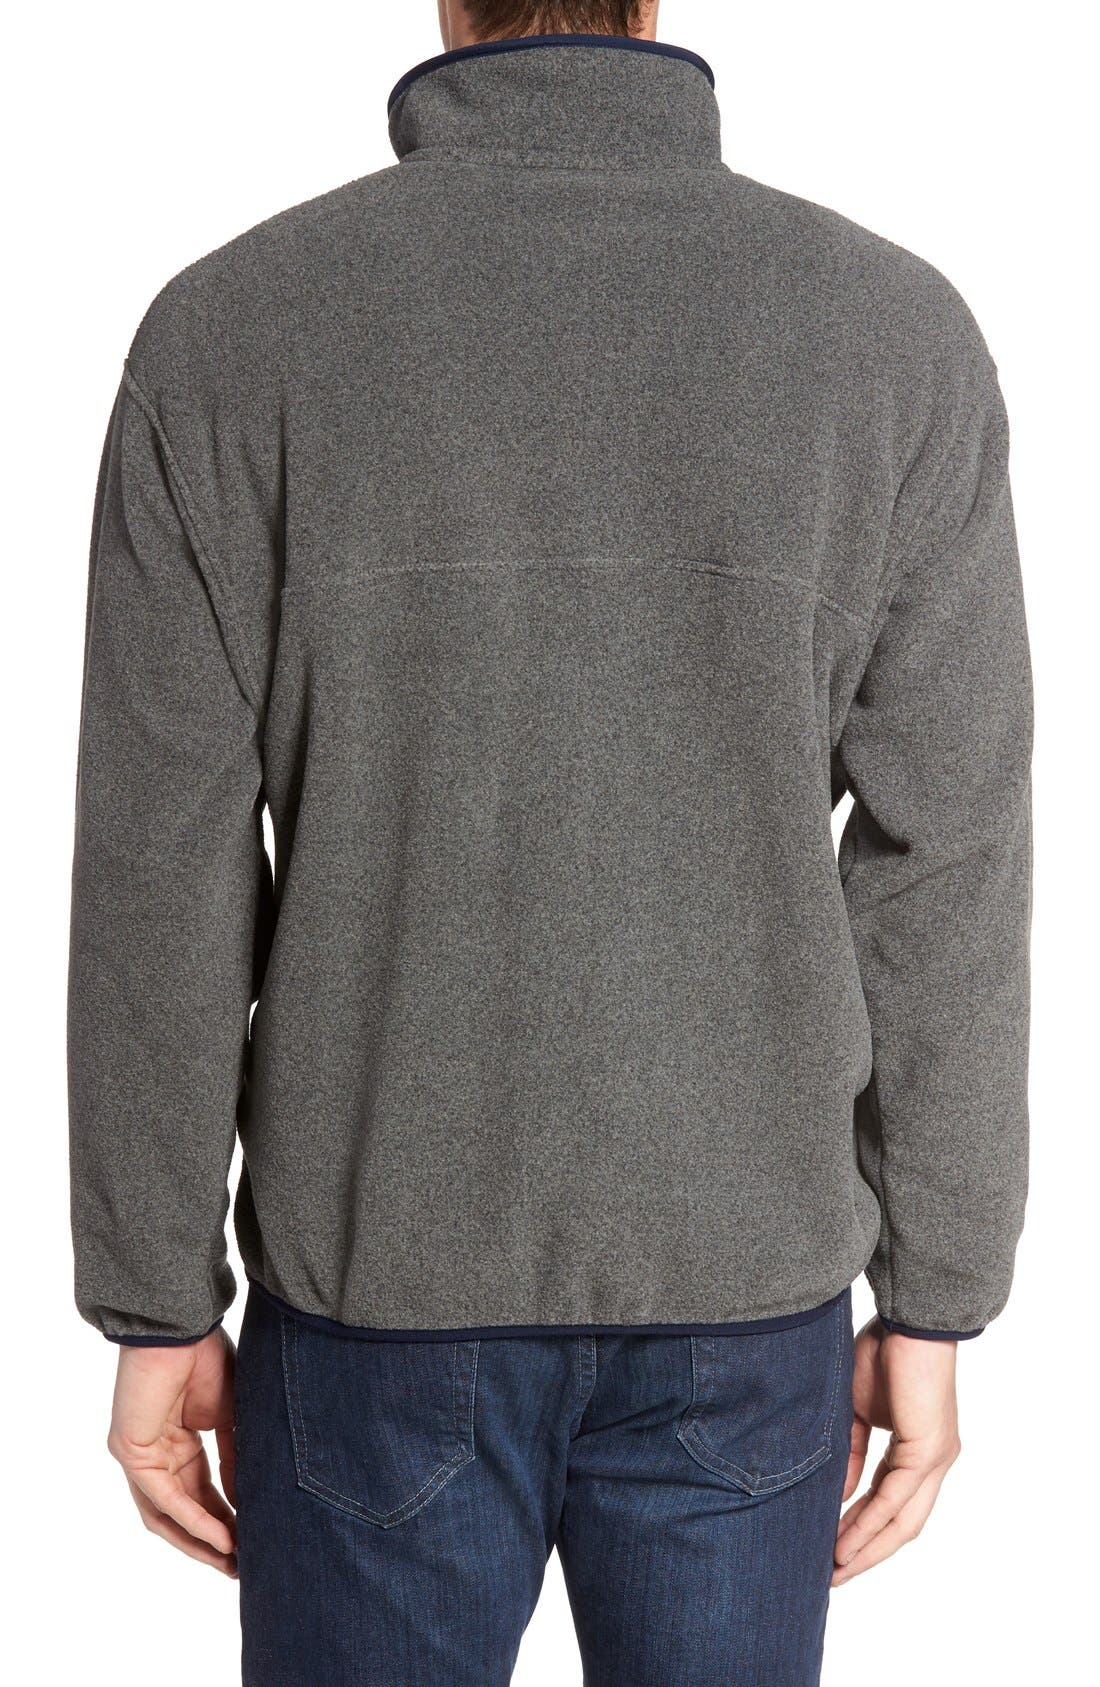 Synchilla<sup>®</sup> Snap-T<sup>®</sup> Pullover,                             Alternate thumbnail 2, color,                             Nickel/ Navy Blue